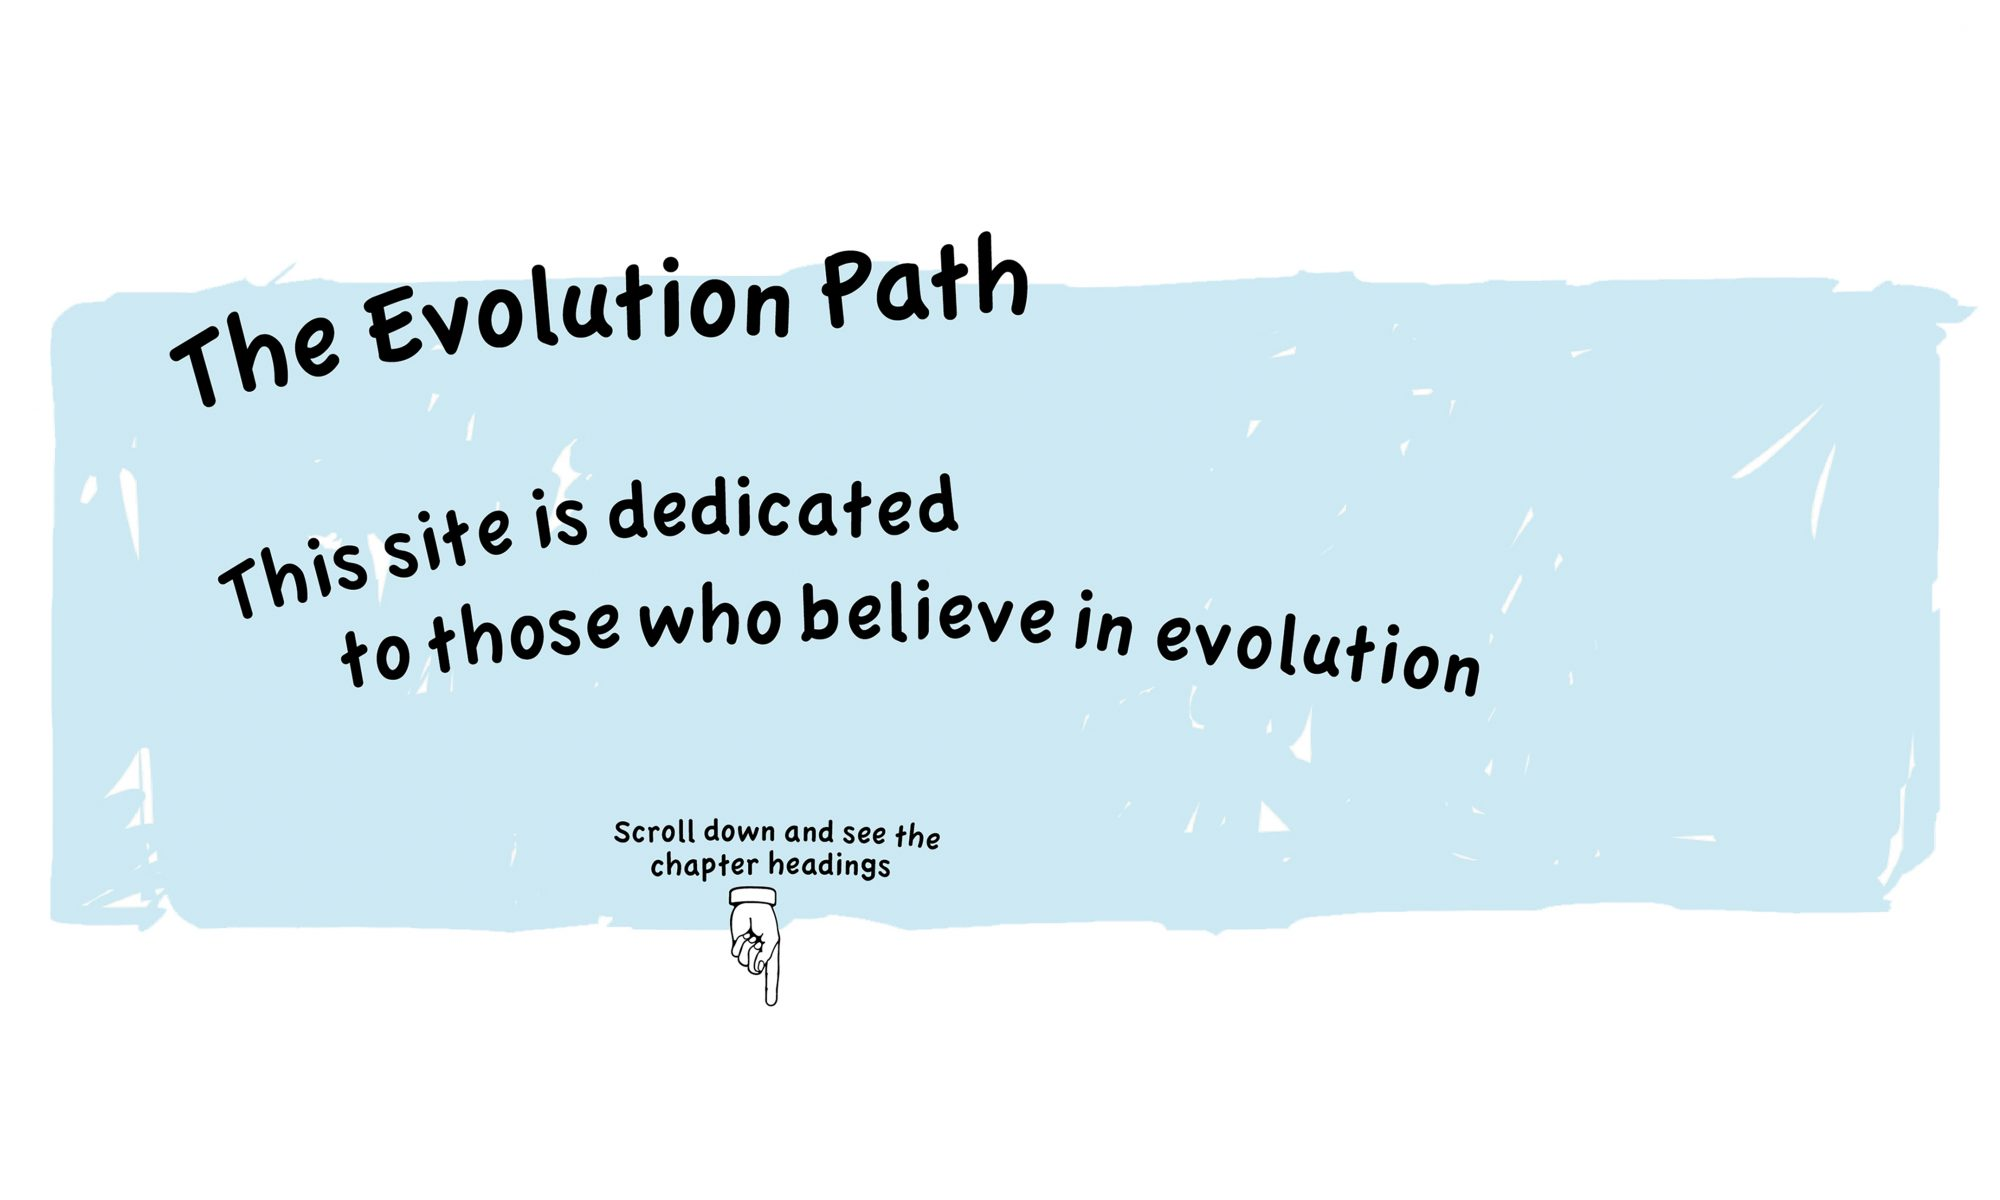 The Evolution Path